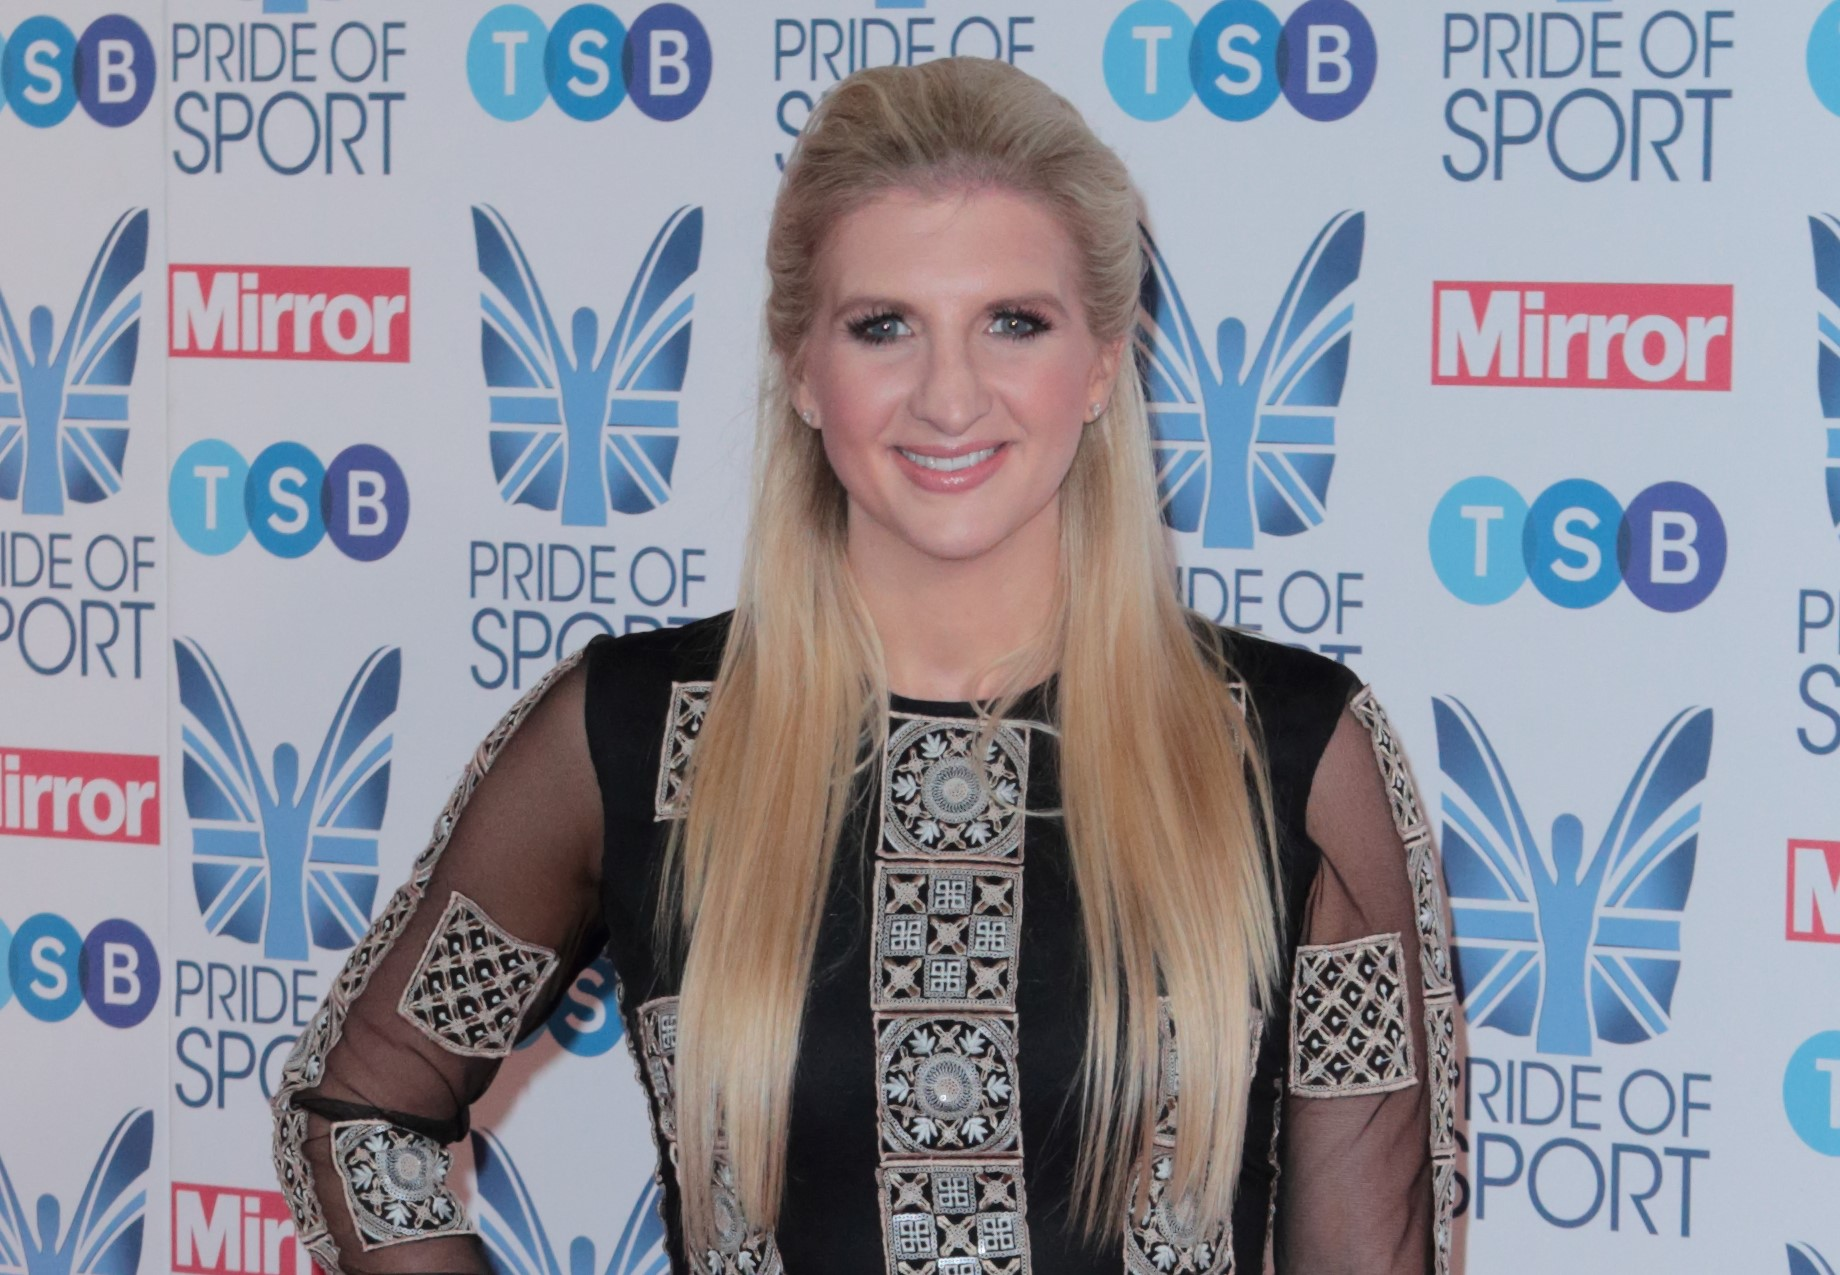 I'm A Celebrity star Rebecca Adlington 'in lockdown with boyfriend and ex-husband'